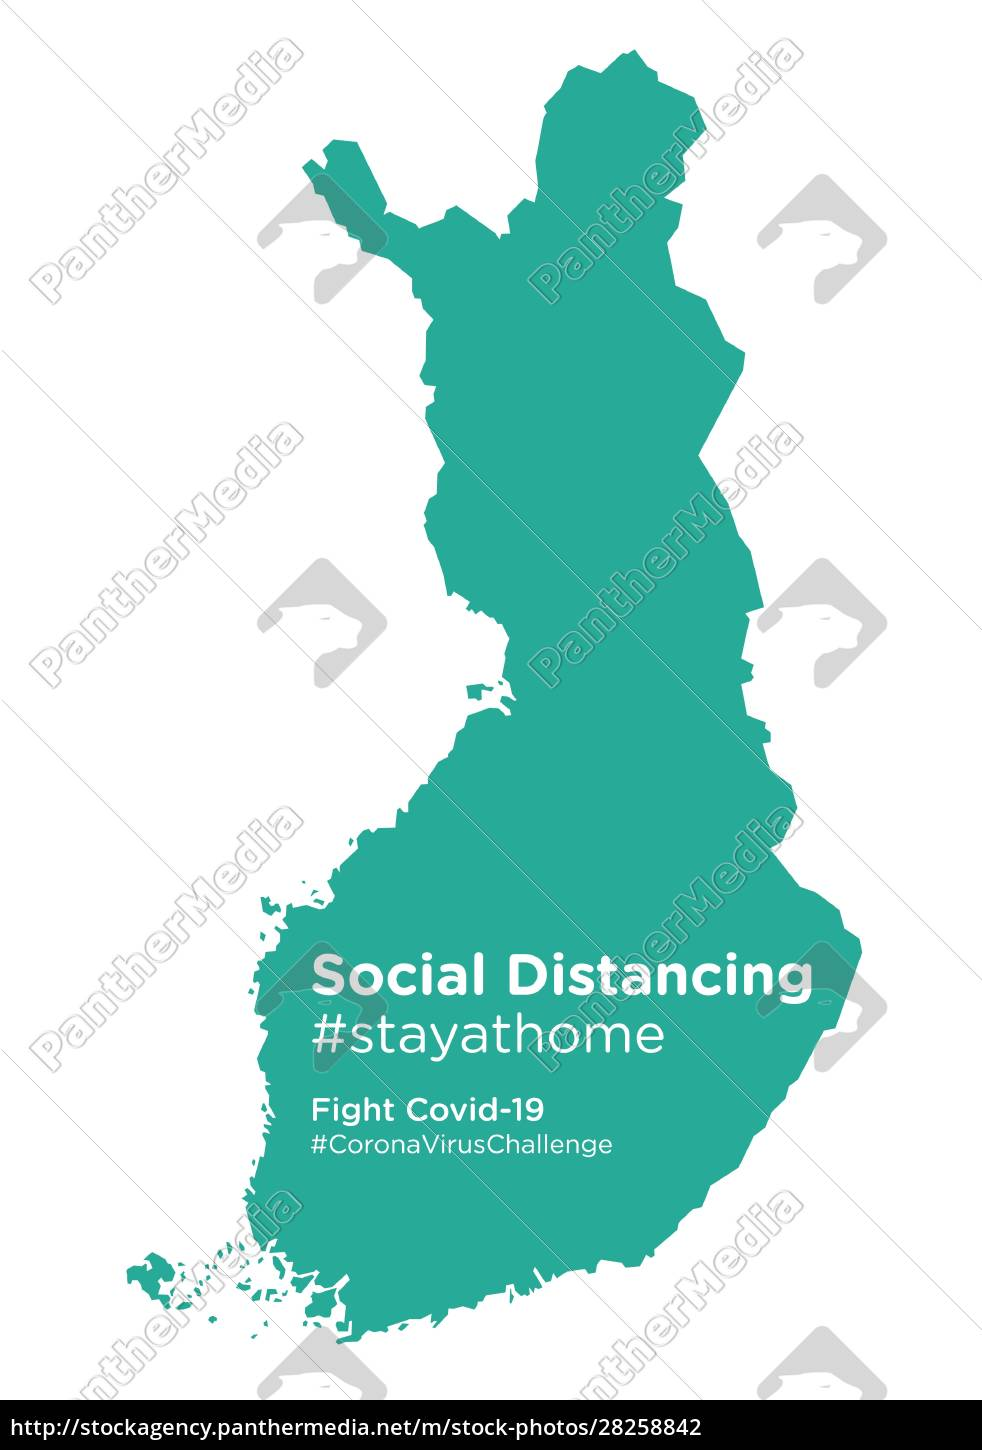 finland, map, with, social, distancing, #stayathome - 28258842